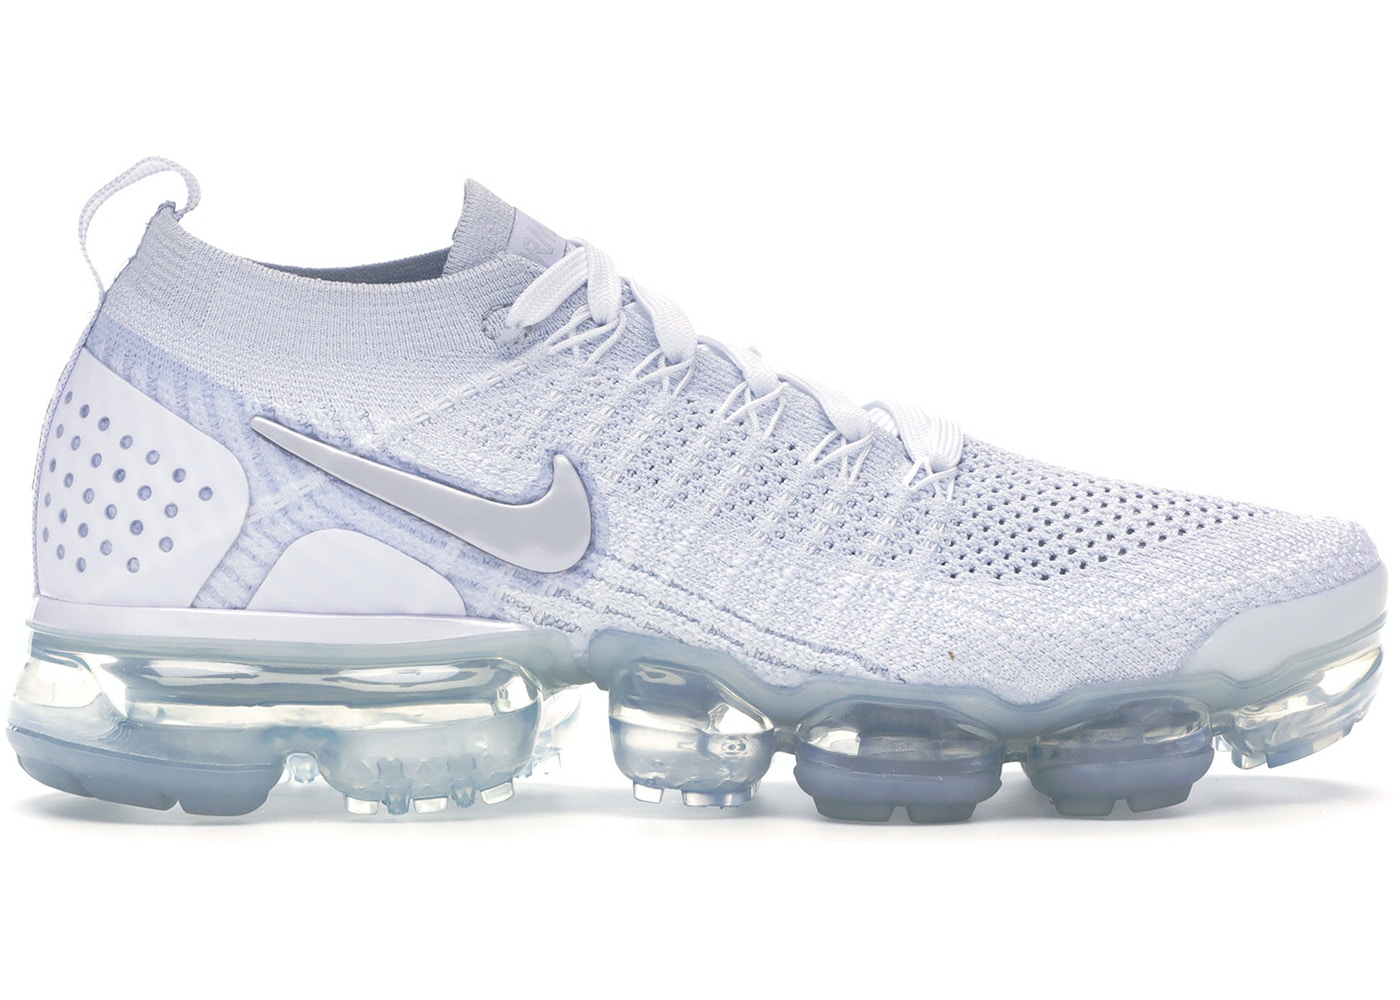 6e005f530d0e Air VaporMax Flyknit 2 White Vast Grey (W) - 942843-105